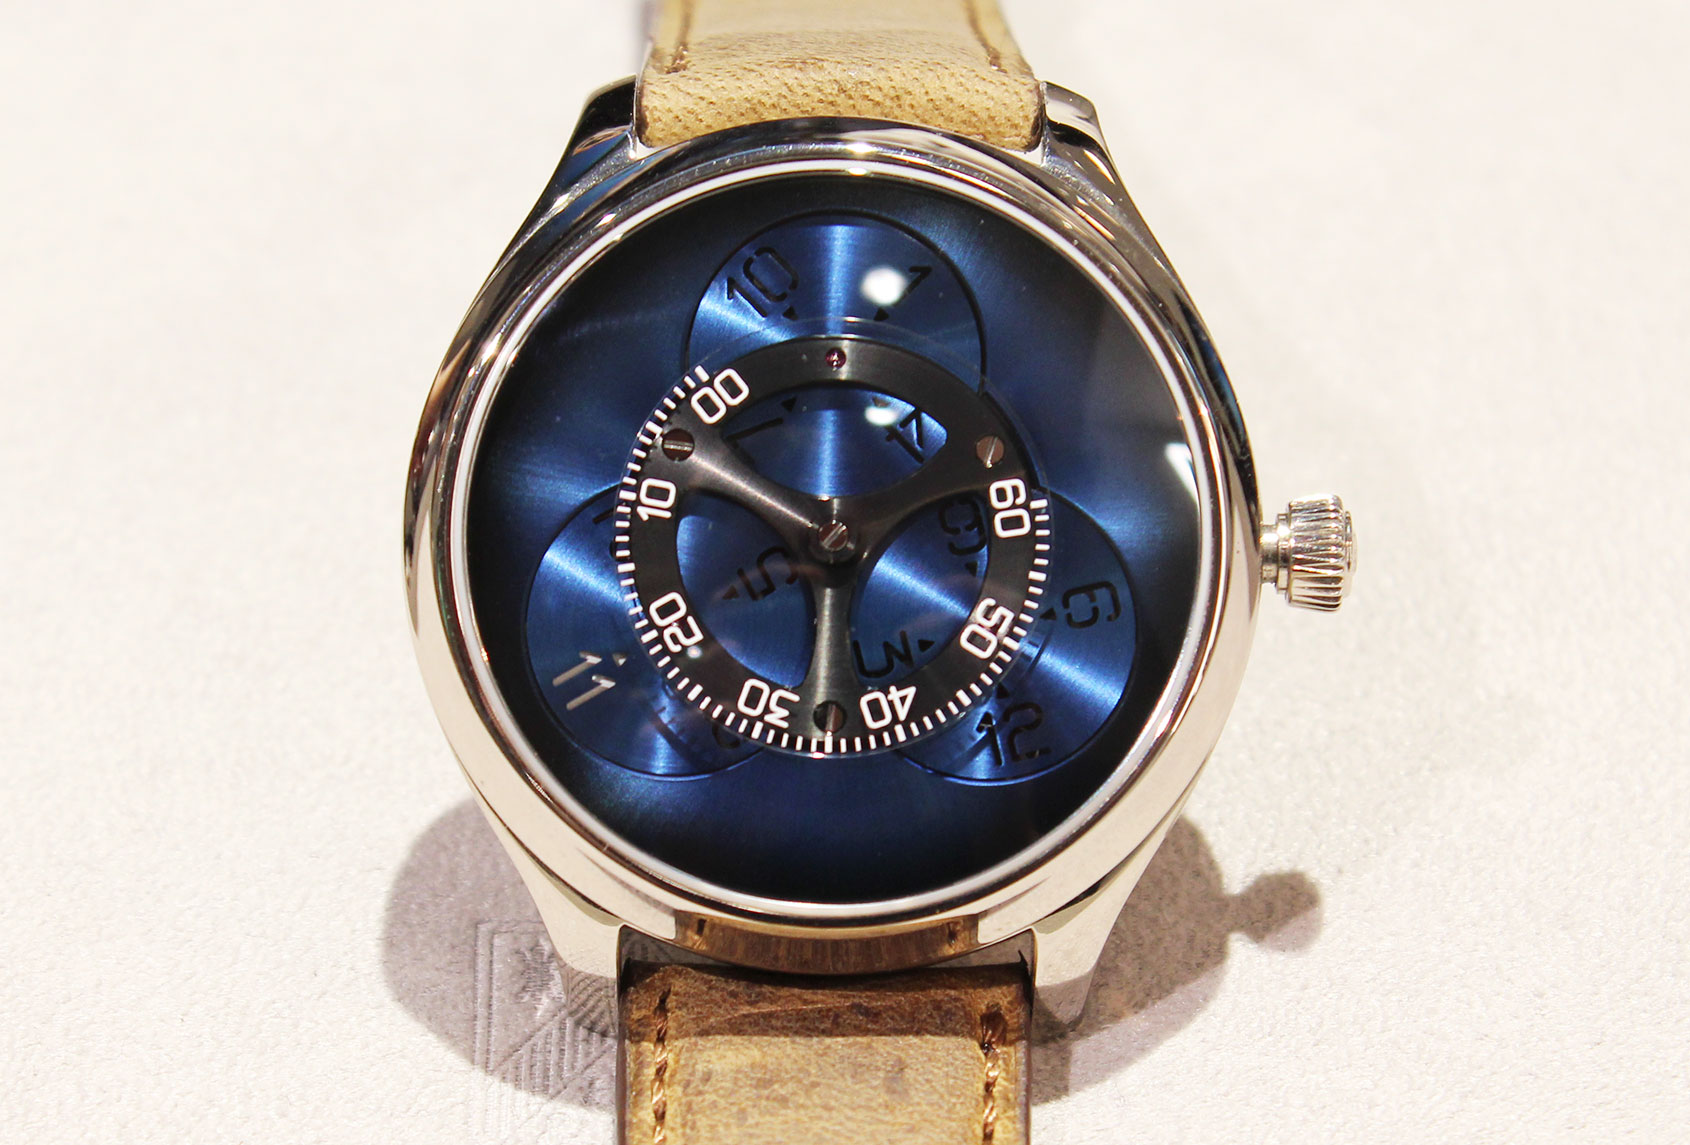 H. MOSER & CIE ENDEAVOUR FLYING HOURS